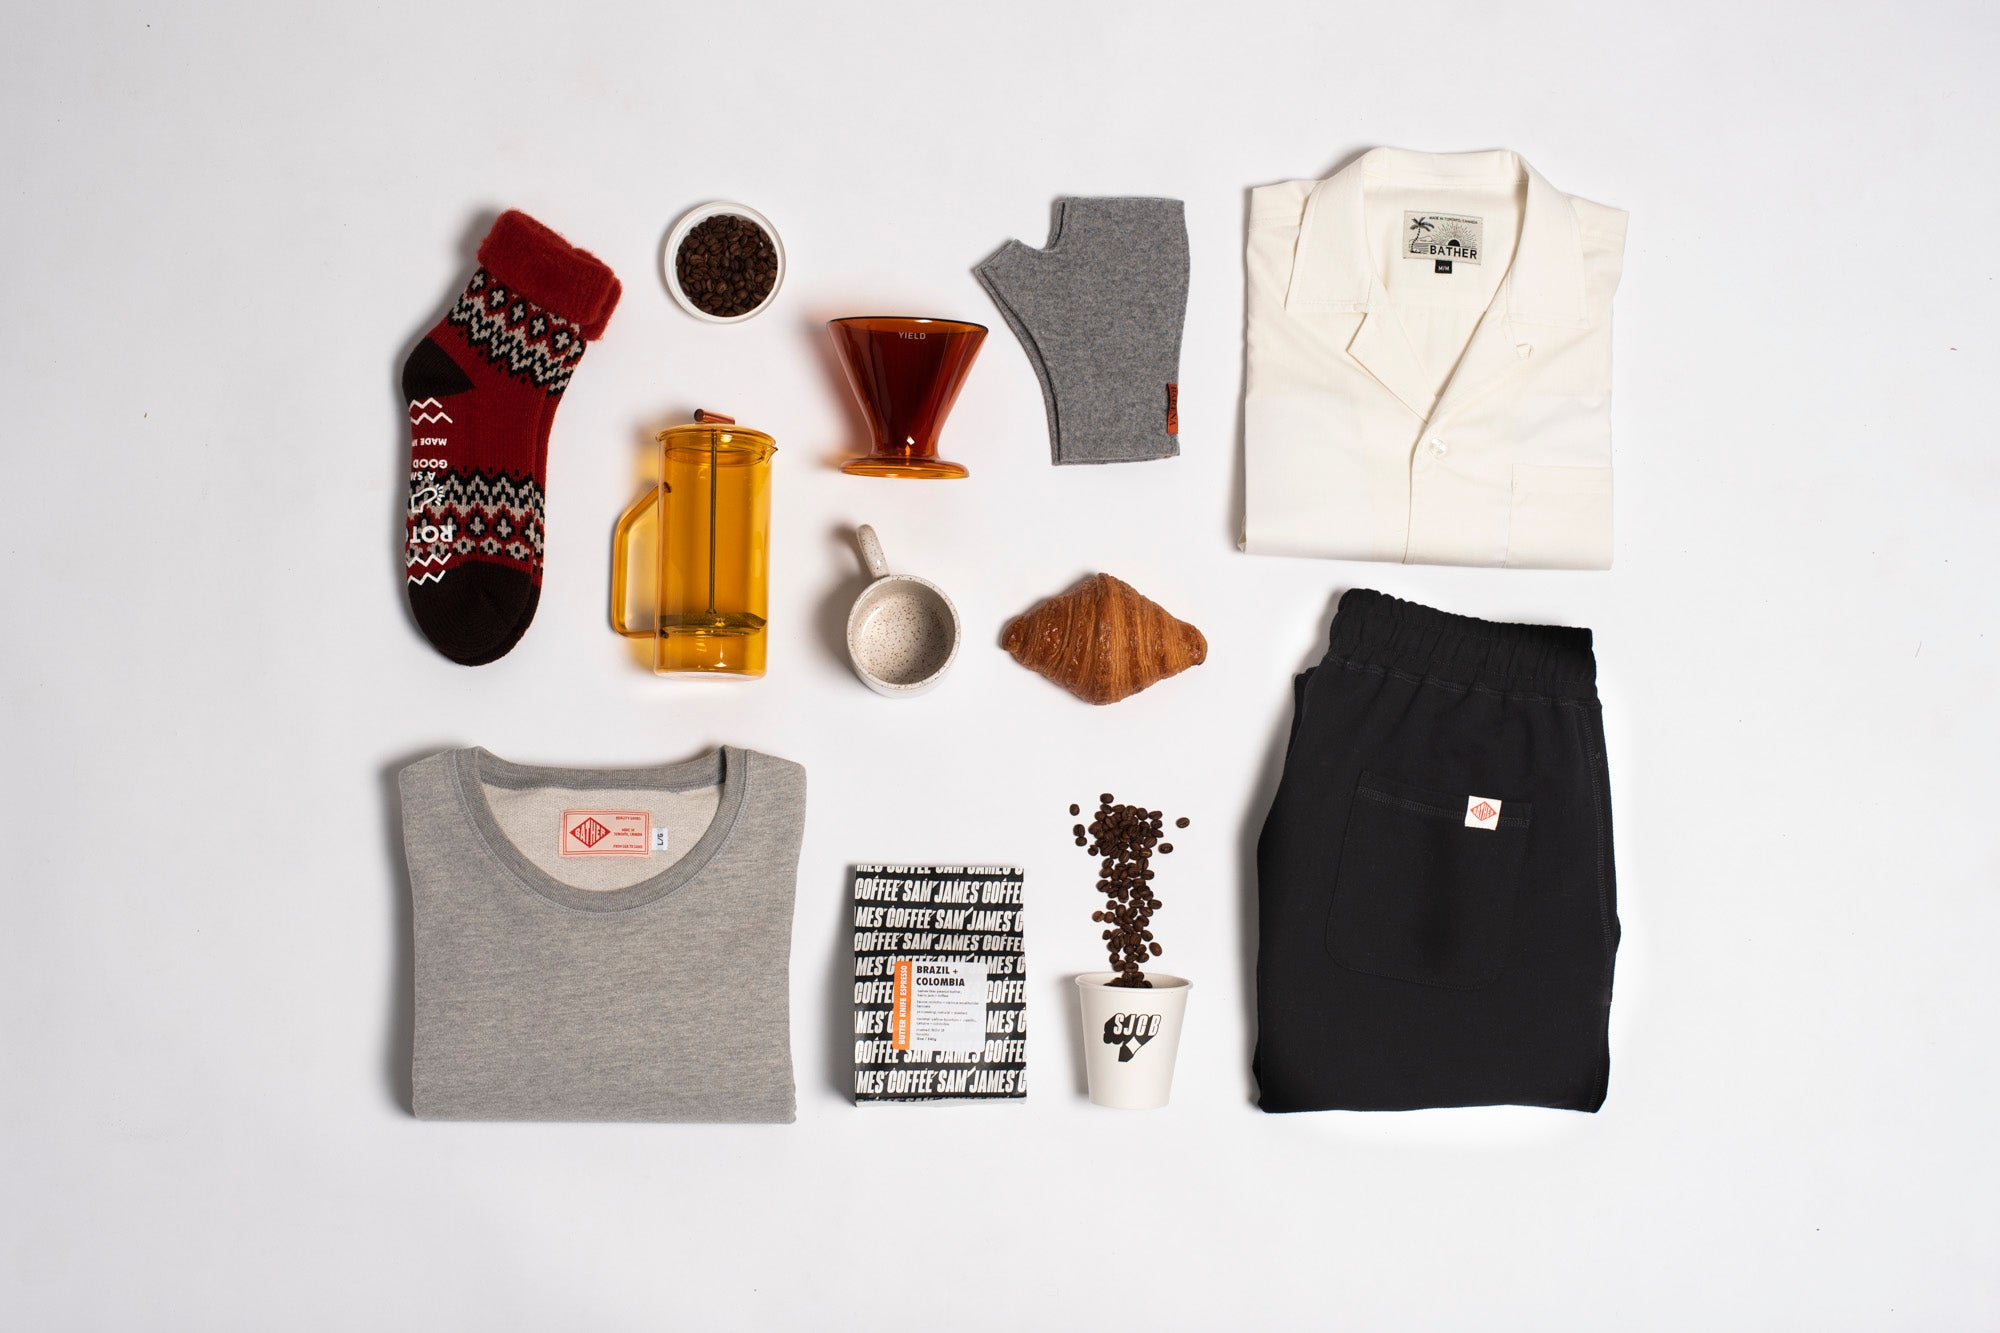 Flat lay image of our Home Brewer gift guide products